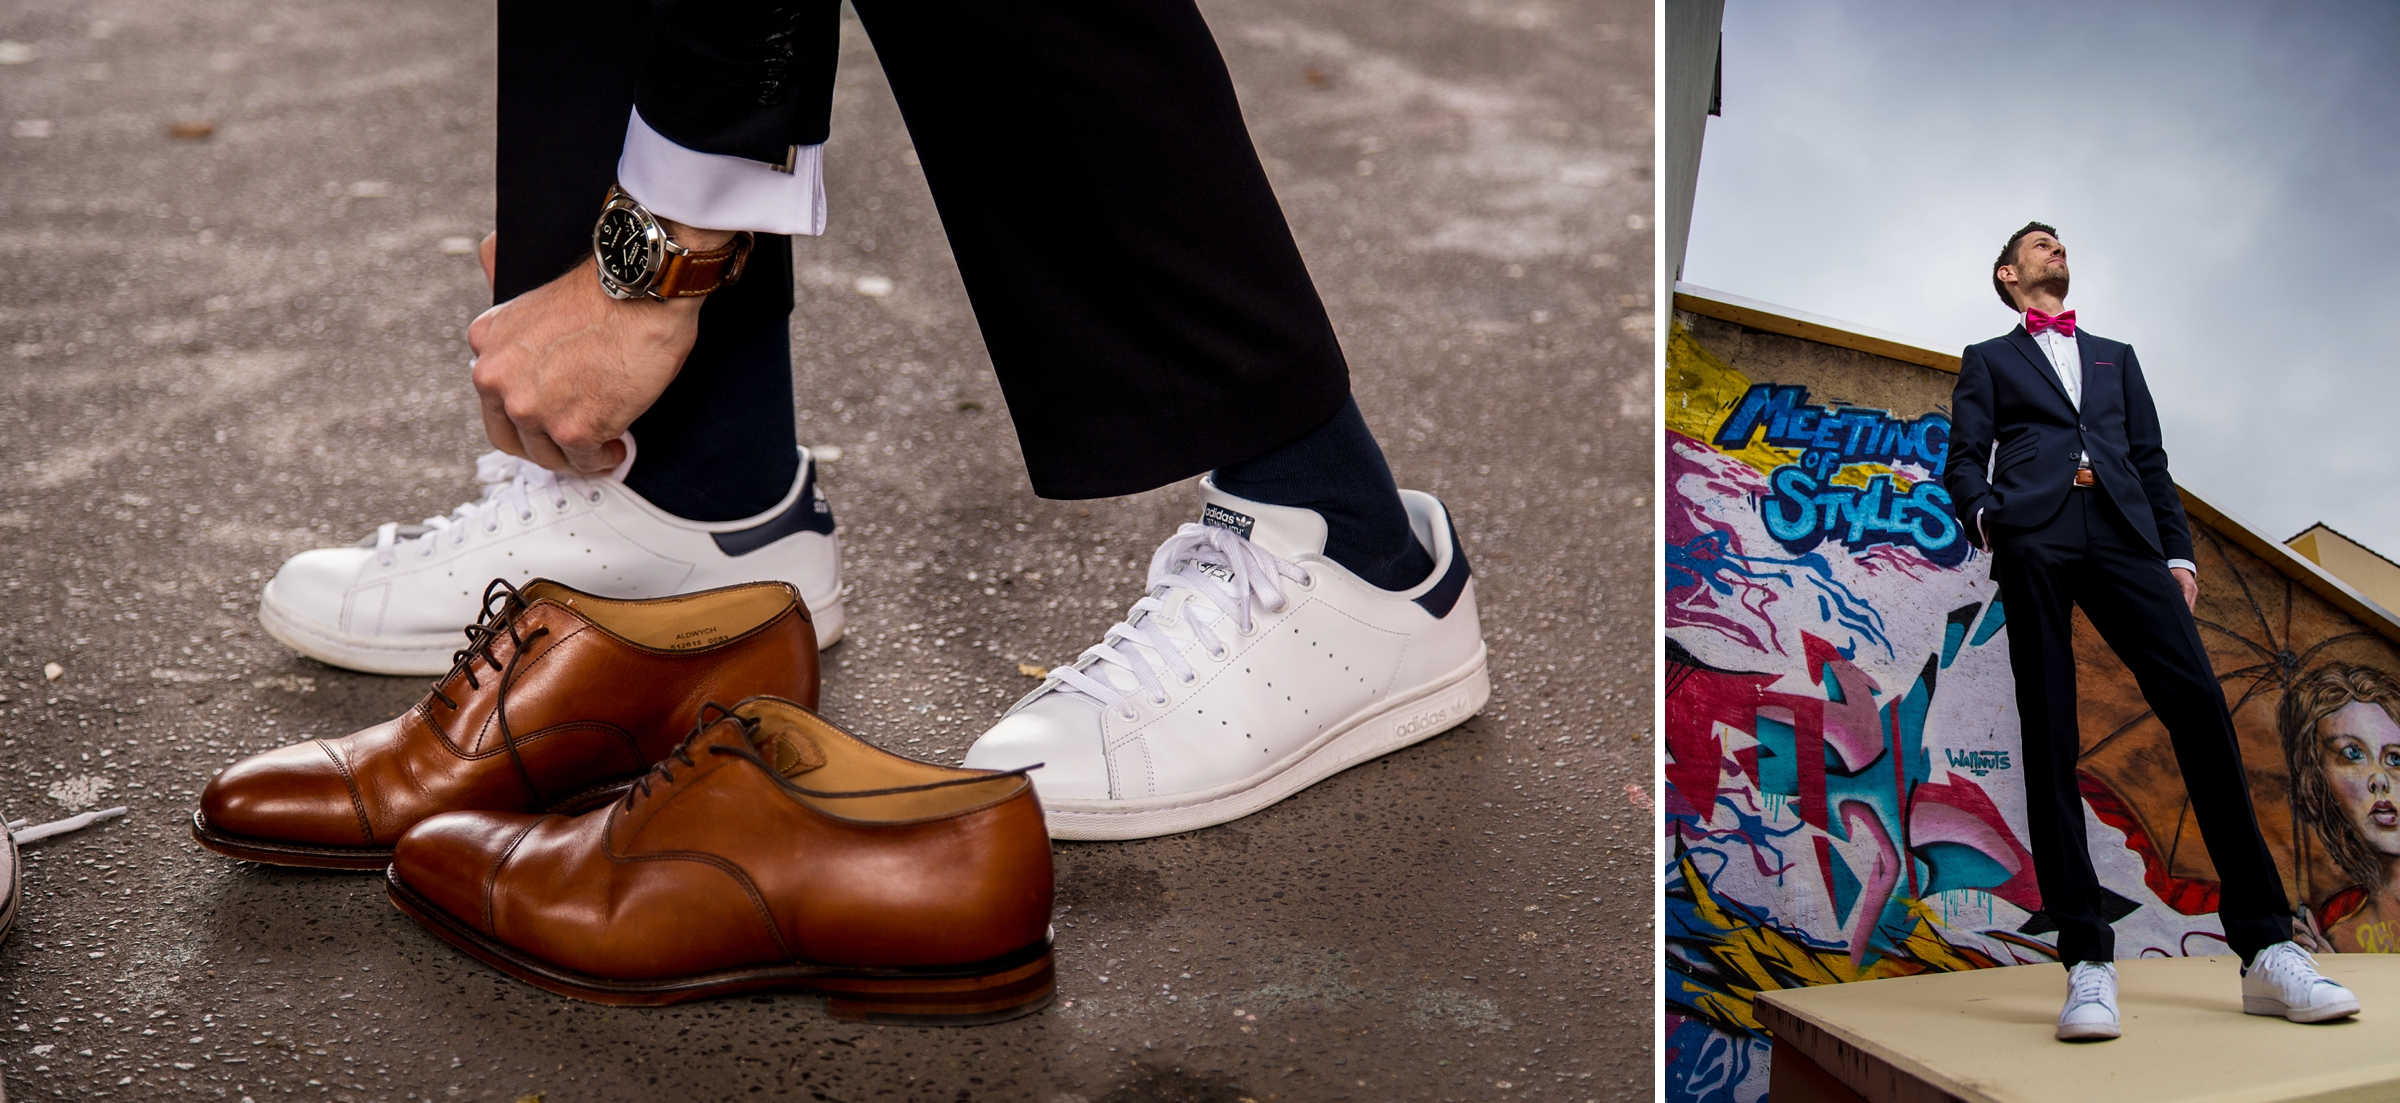 Hochzeitsreportage-Mainz-Wiesbaden-Sneaker-Turnschuhe-stylish